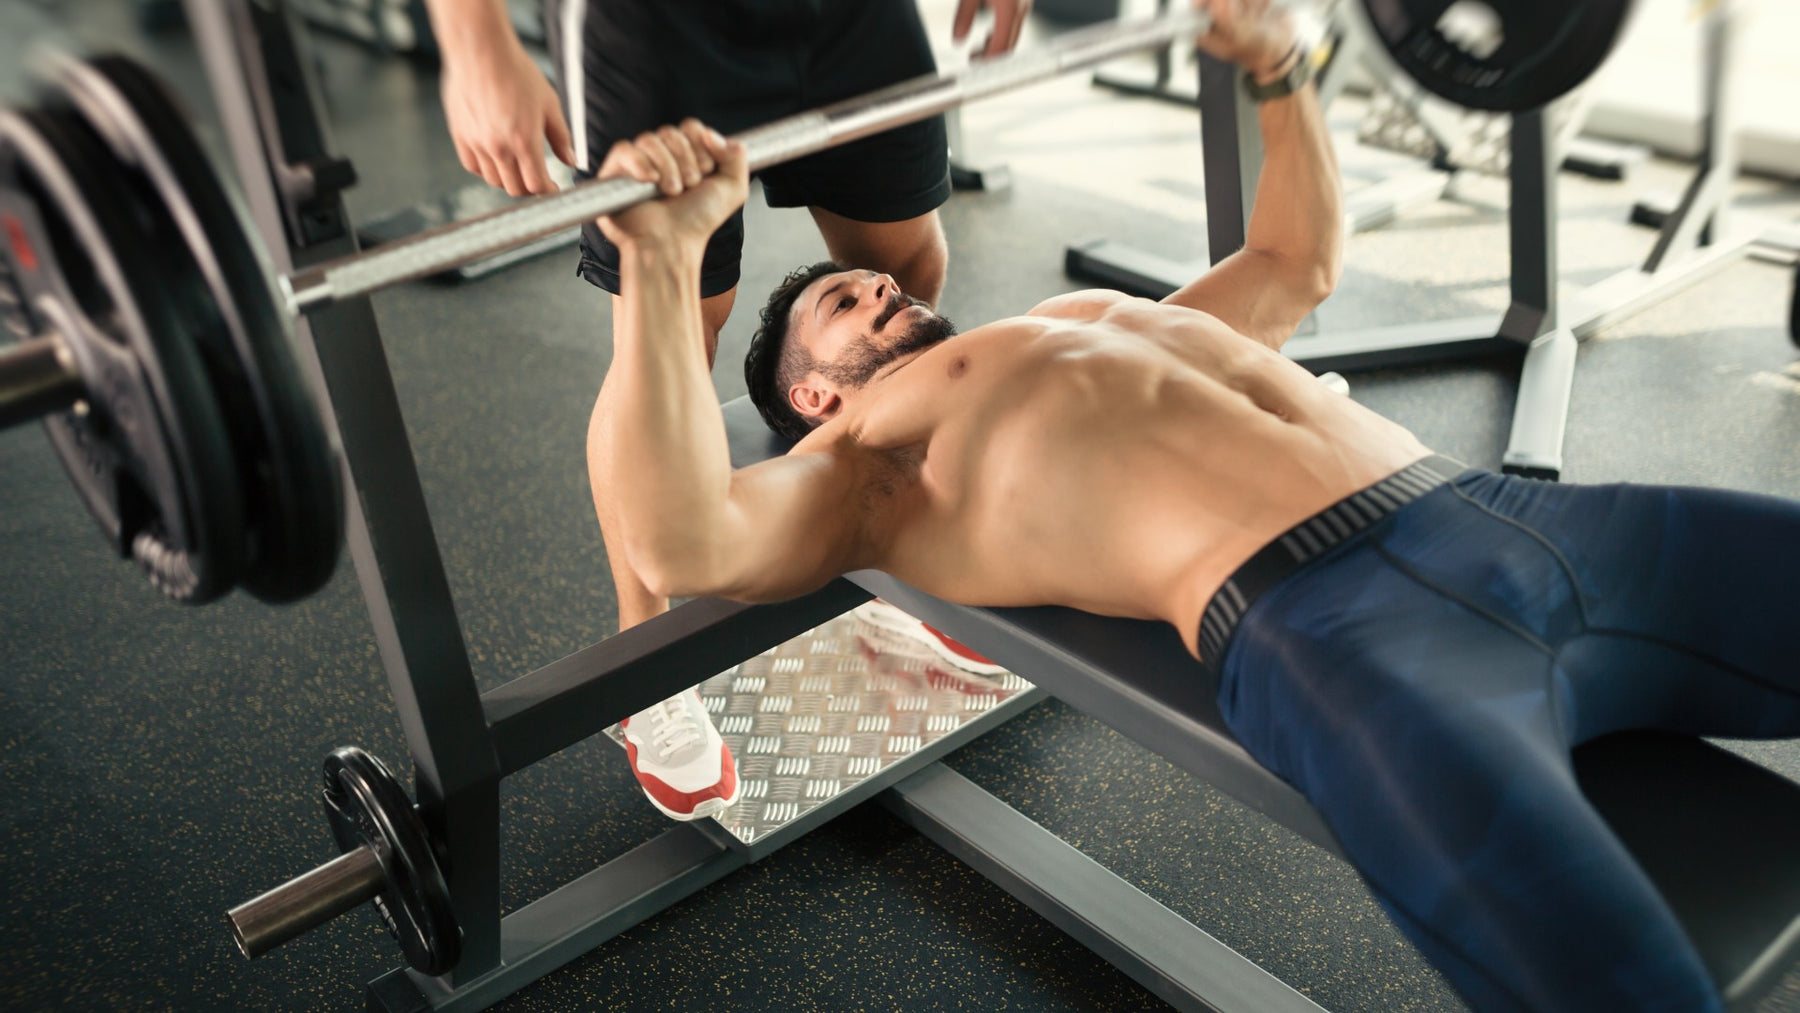 Bench Press Plateau - 5 Exercises That Will Help